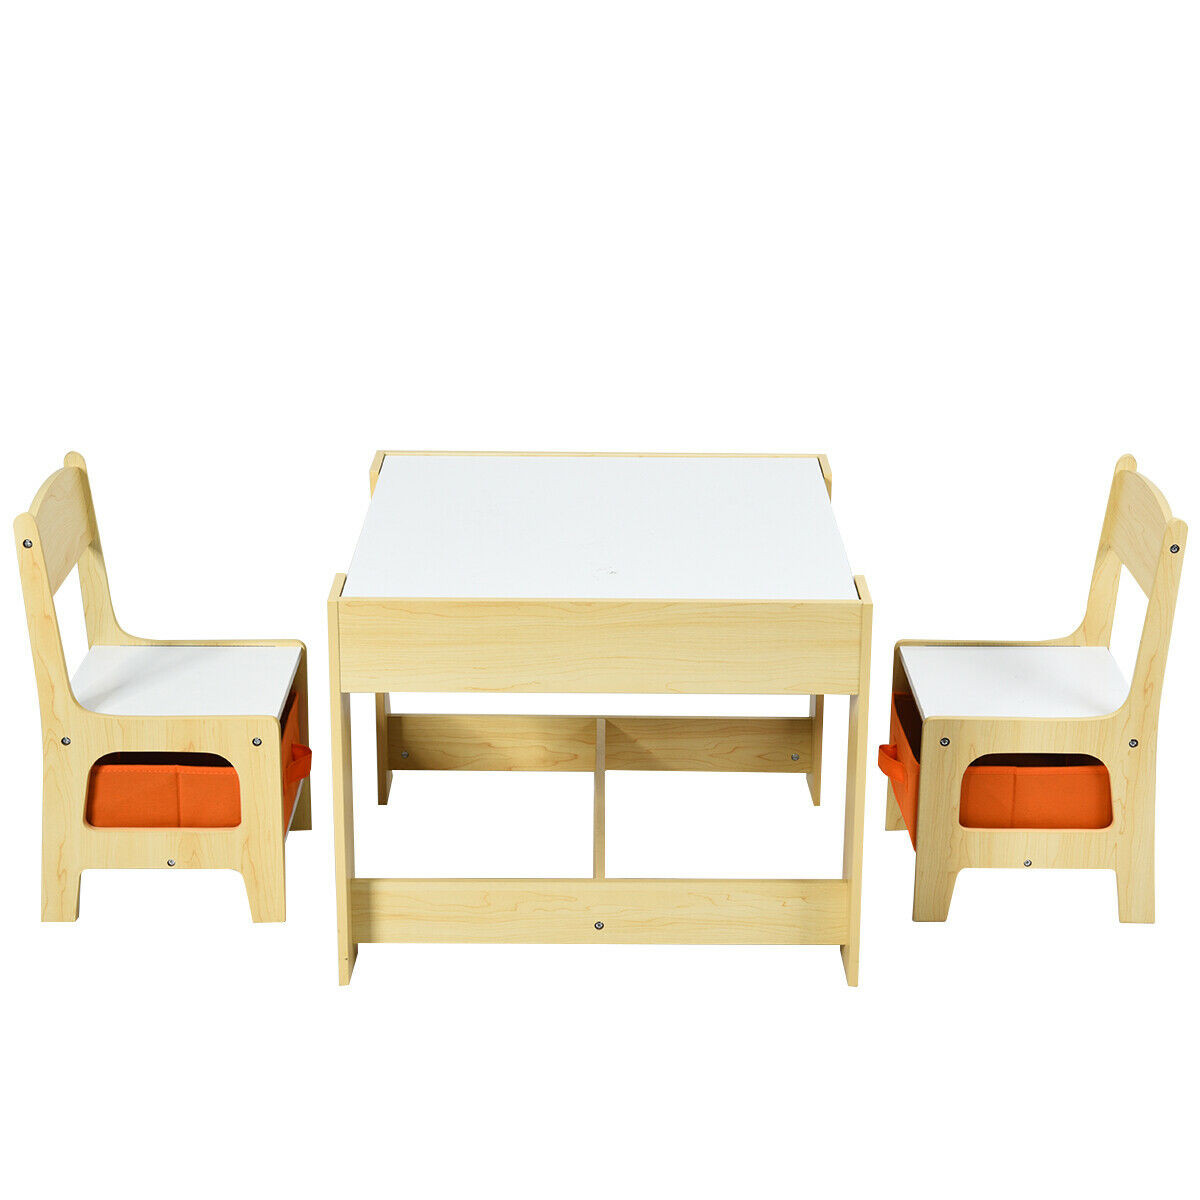 3 In 1 Activity Table Certified Multipurpose Kid Table And Chair Set With Drawers And Storage Wooden Kiddy Sized Furniture With Detachable Blackboard For Toddlers Ages 3 7 Years 3 Pieces